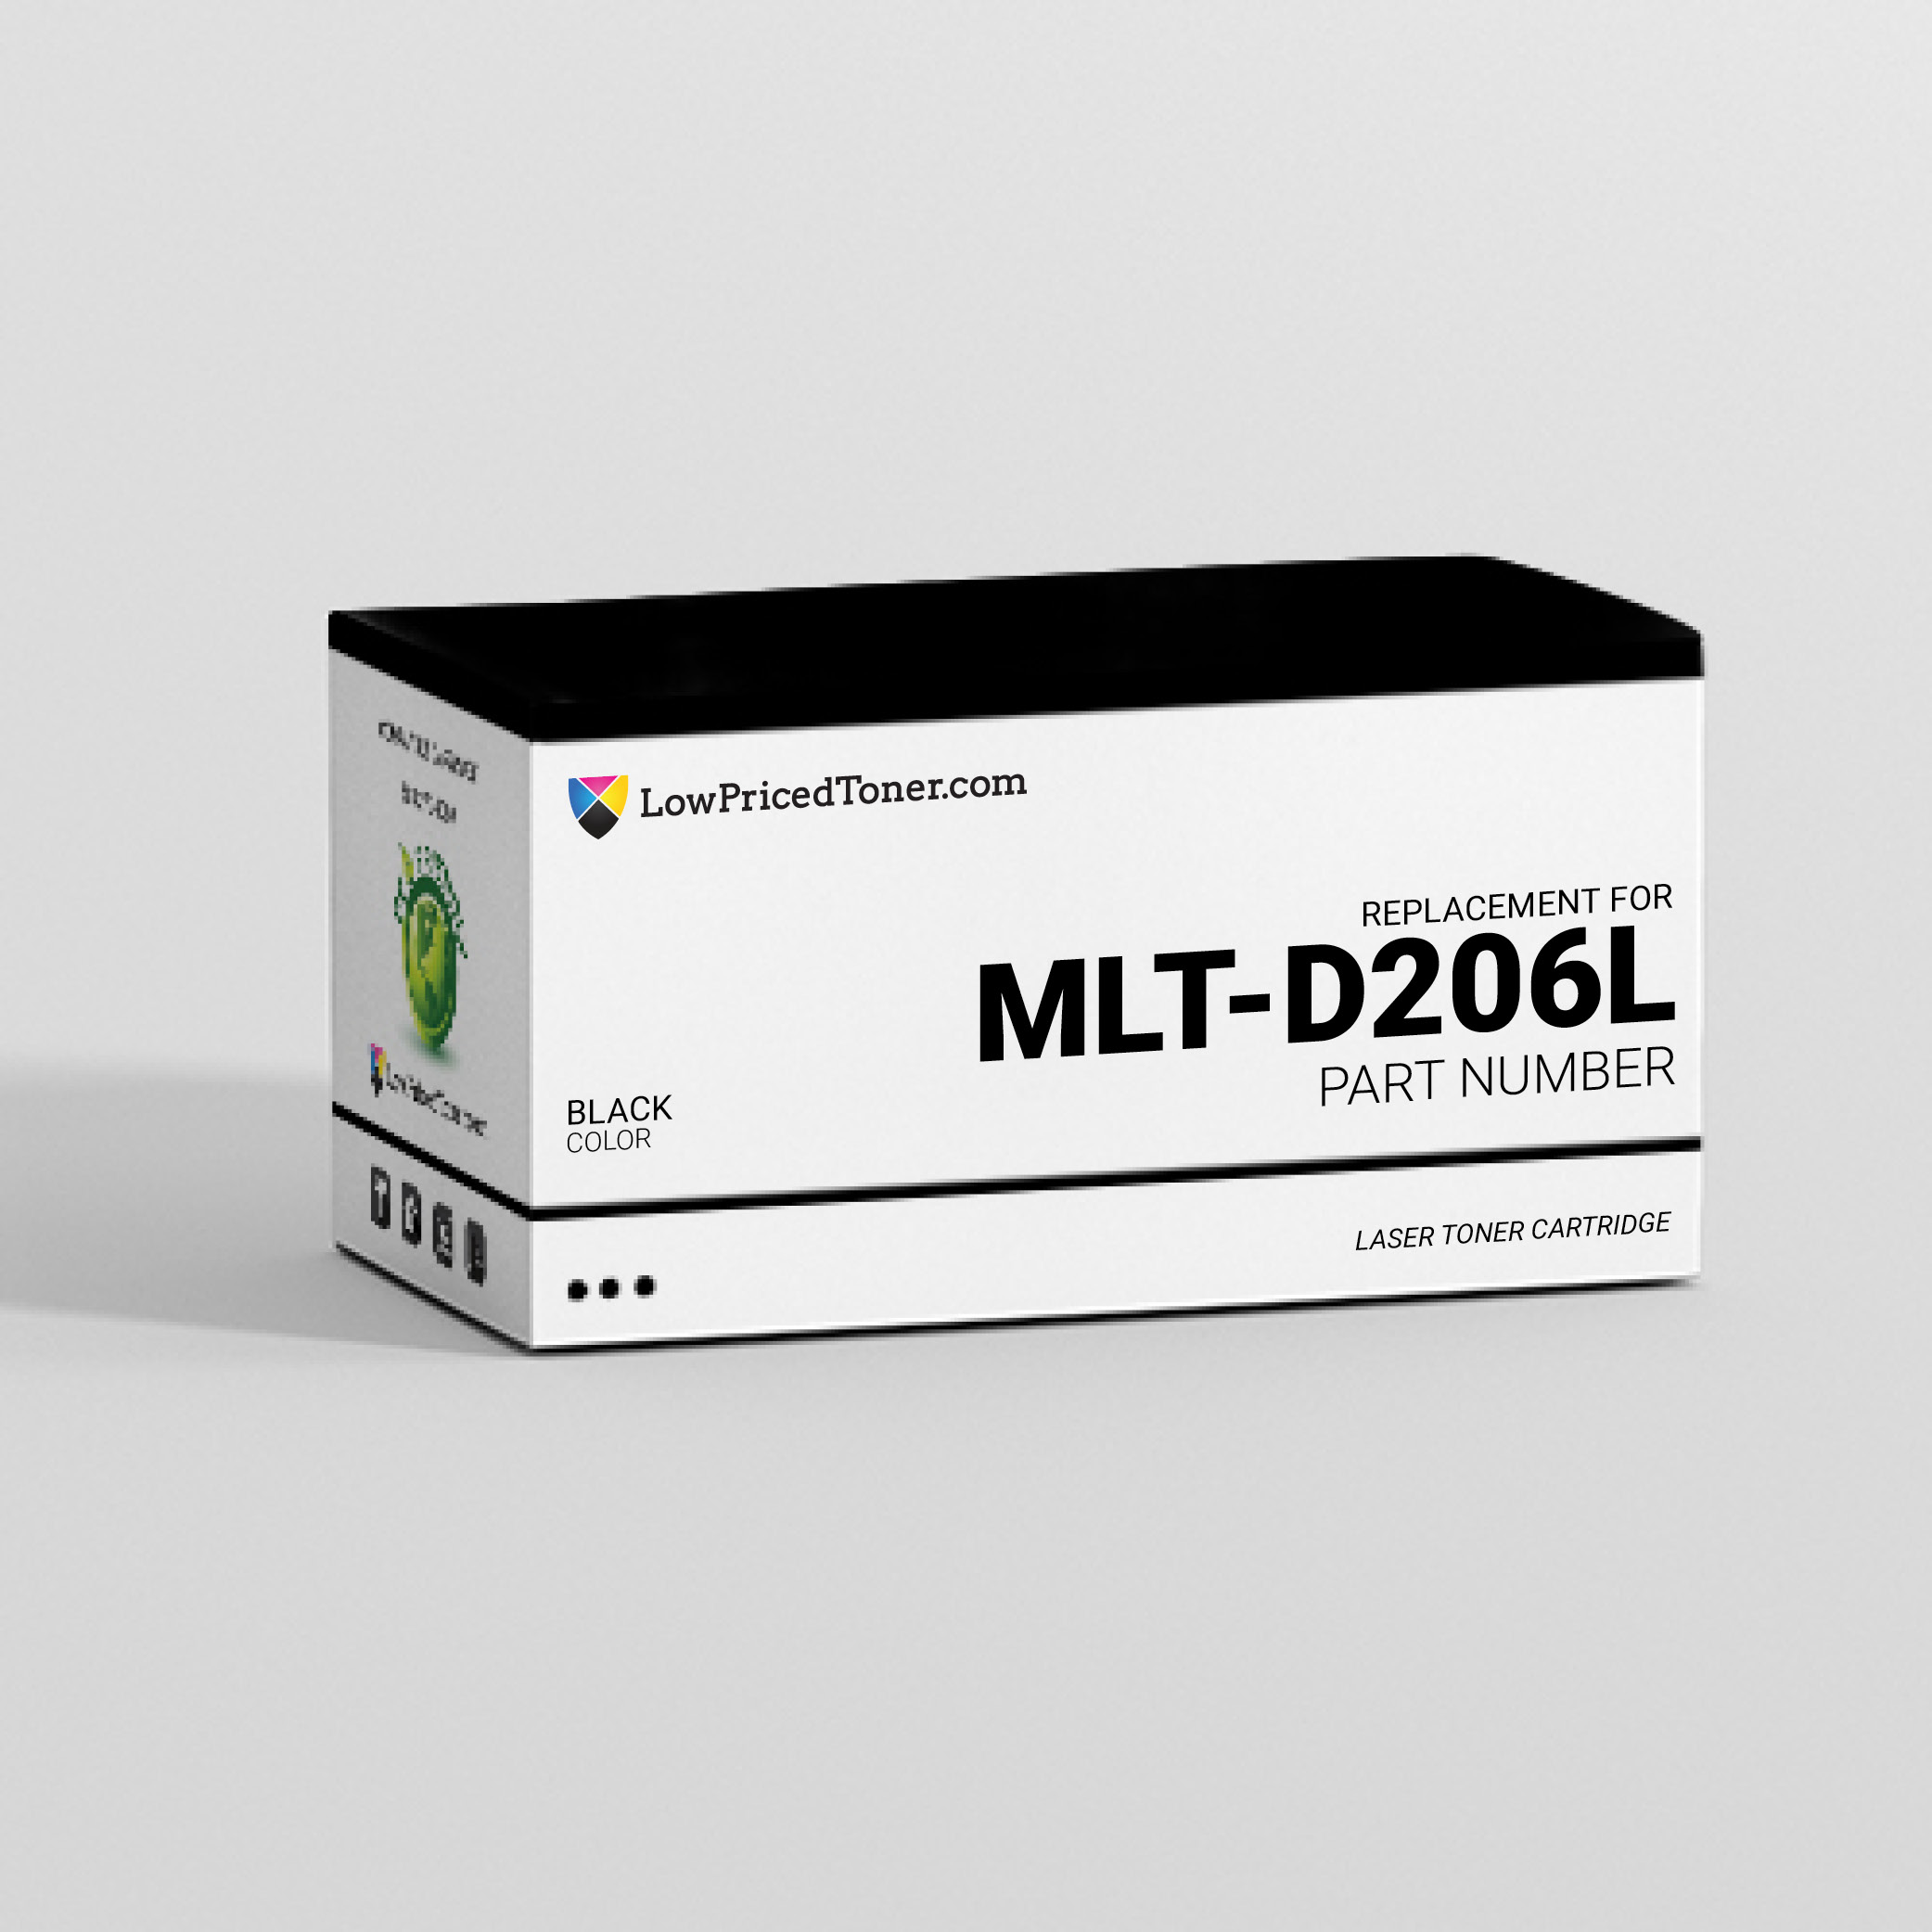 Samsung MLT-D206L Compatible Black Laser Toner Cartridge